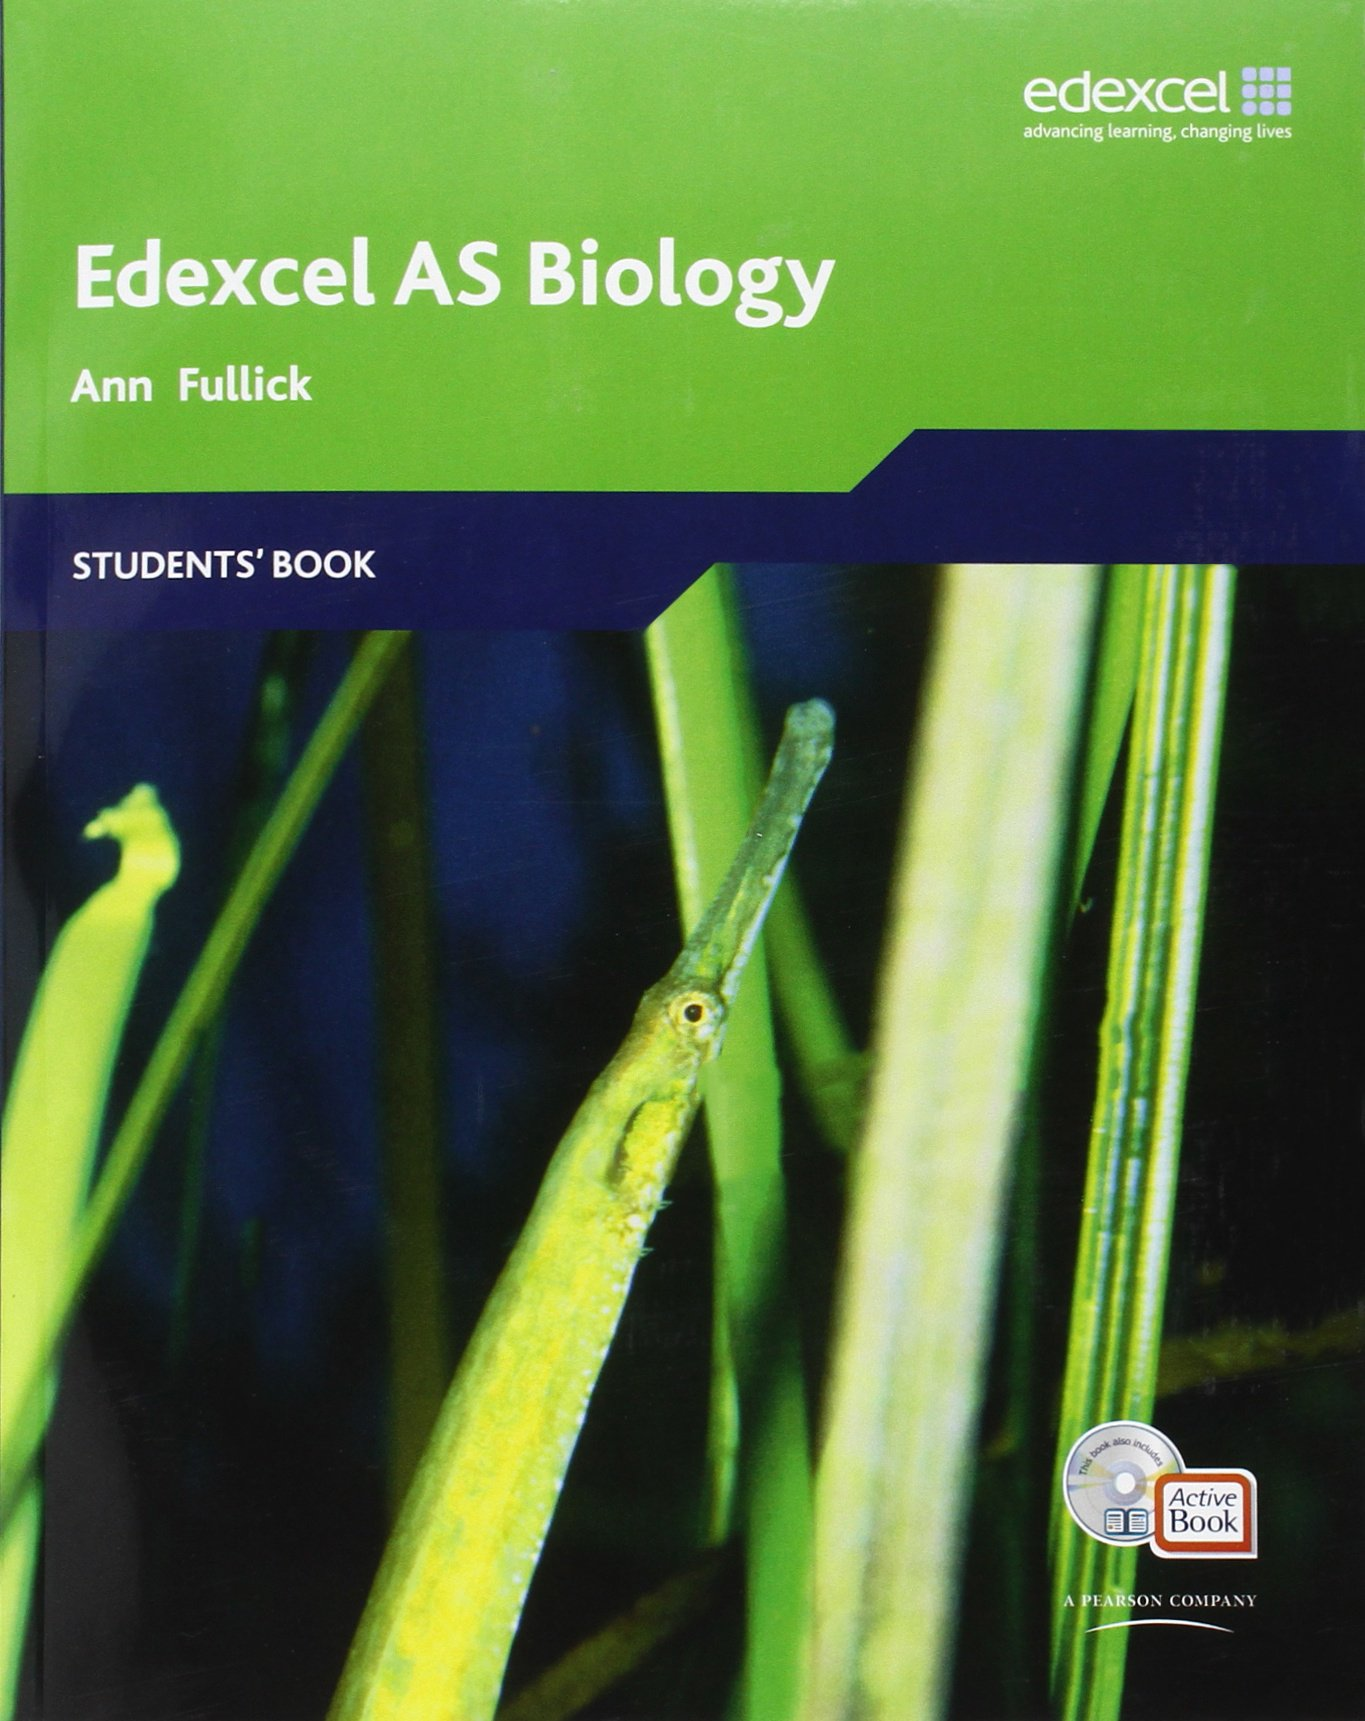 biology courseworks Ut dallas coursebook is an advanced tool for obtaining information about classes at the university of texas at dallas (utd) lookup course and catalog information, class syllabi (syllabus), course evaluations, instructor evaluations, and submit syllabus files from a single central location.